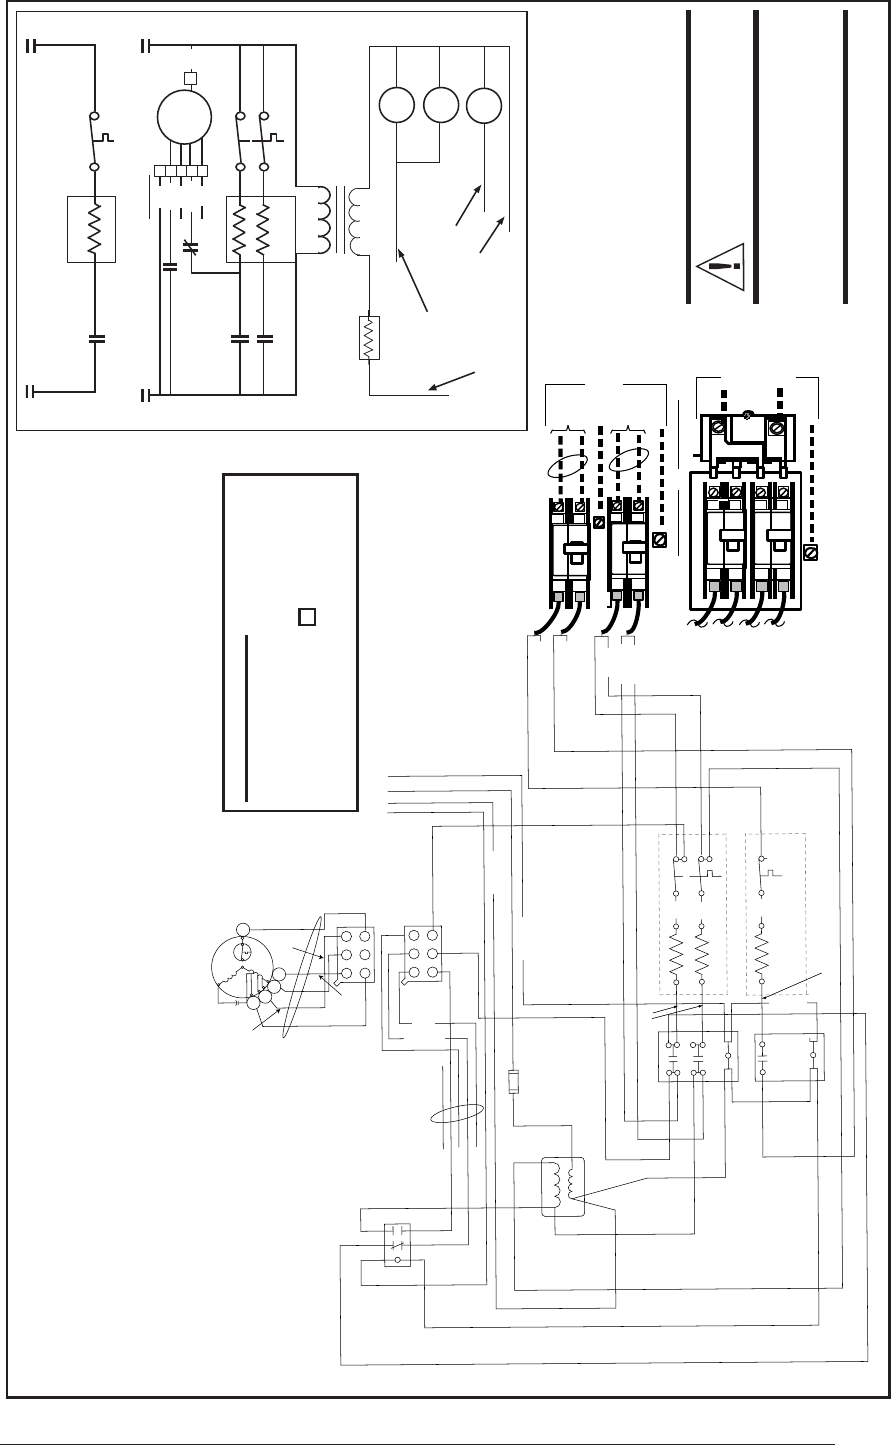 3da81ad6 f192 4a9e b623 79207b82e4c7 bg19 nordyne ac wiring diagram wiring diagram for nordyne air handler at gsmx.co